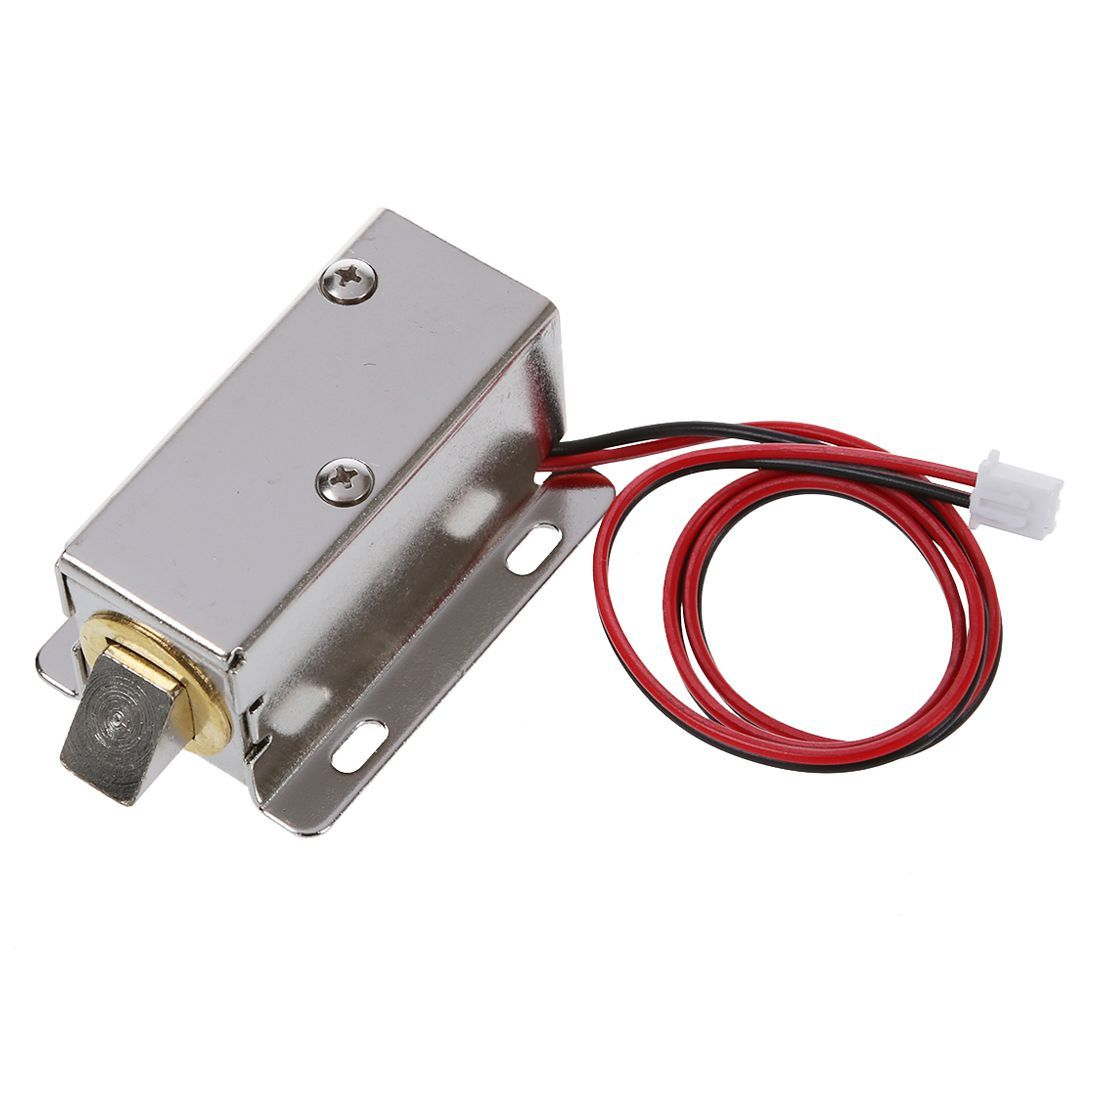 0837l Dc 12v 8w Open Frame Type Solenoid For Electric Door Lock Door Locks Open Frame Hardware